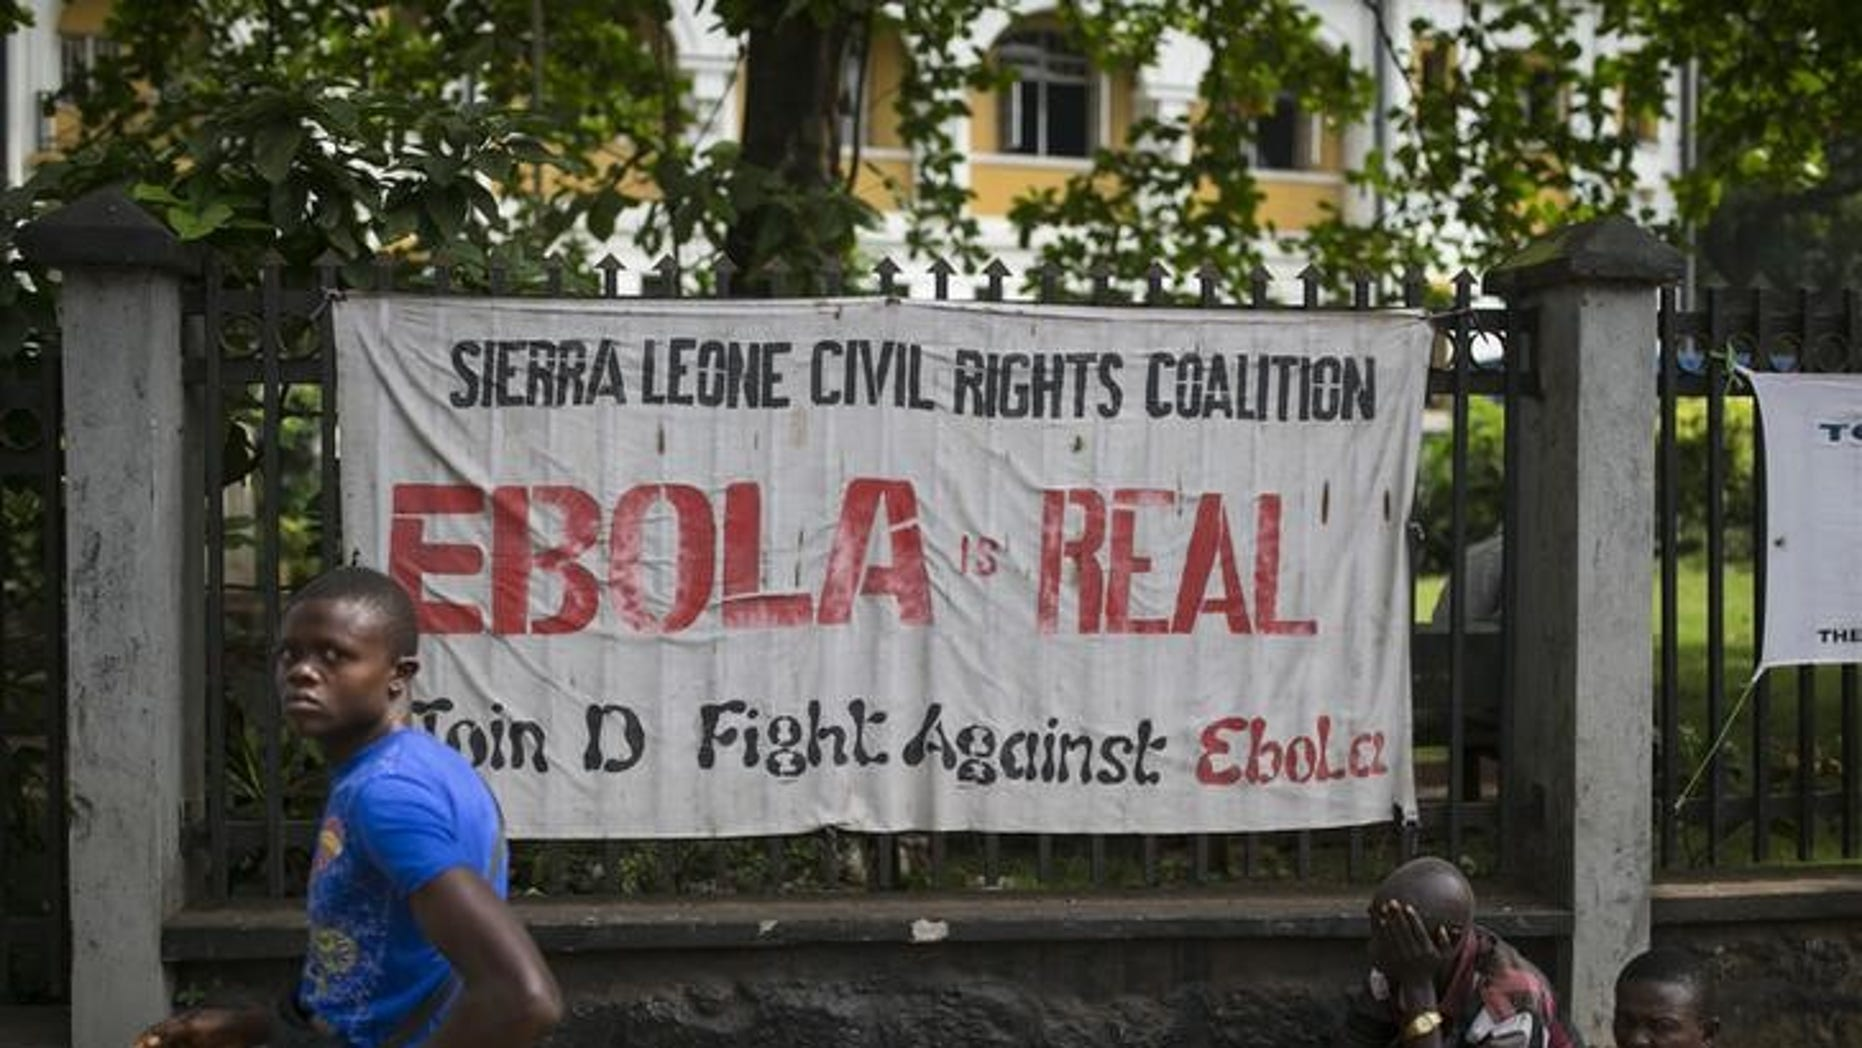 A man walks past a banner about Ebola in Freetown, Sierra Leone, December 16, 2014.